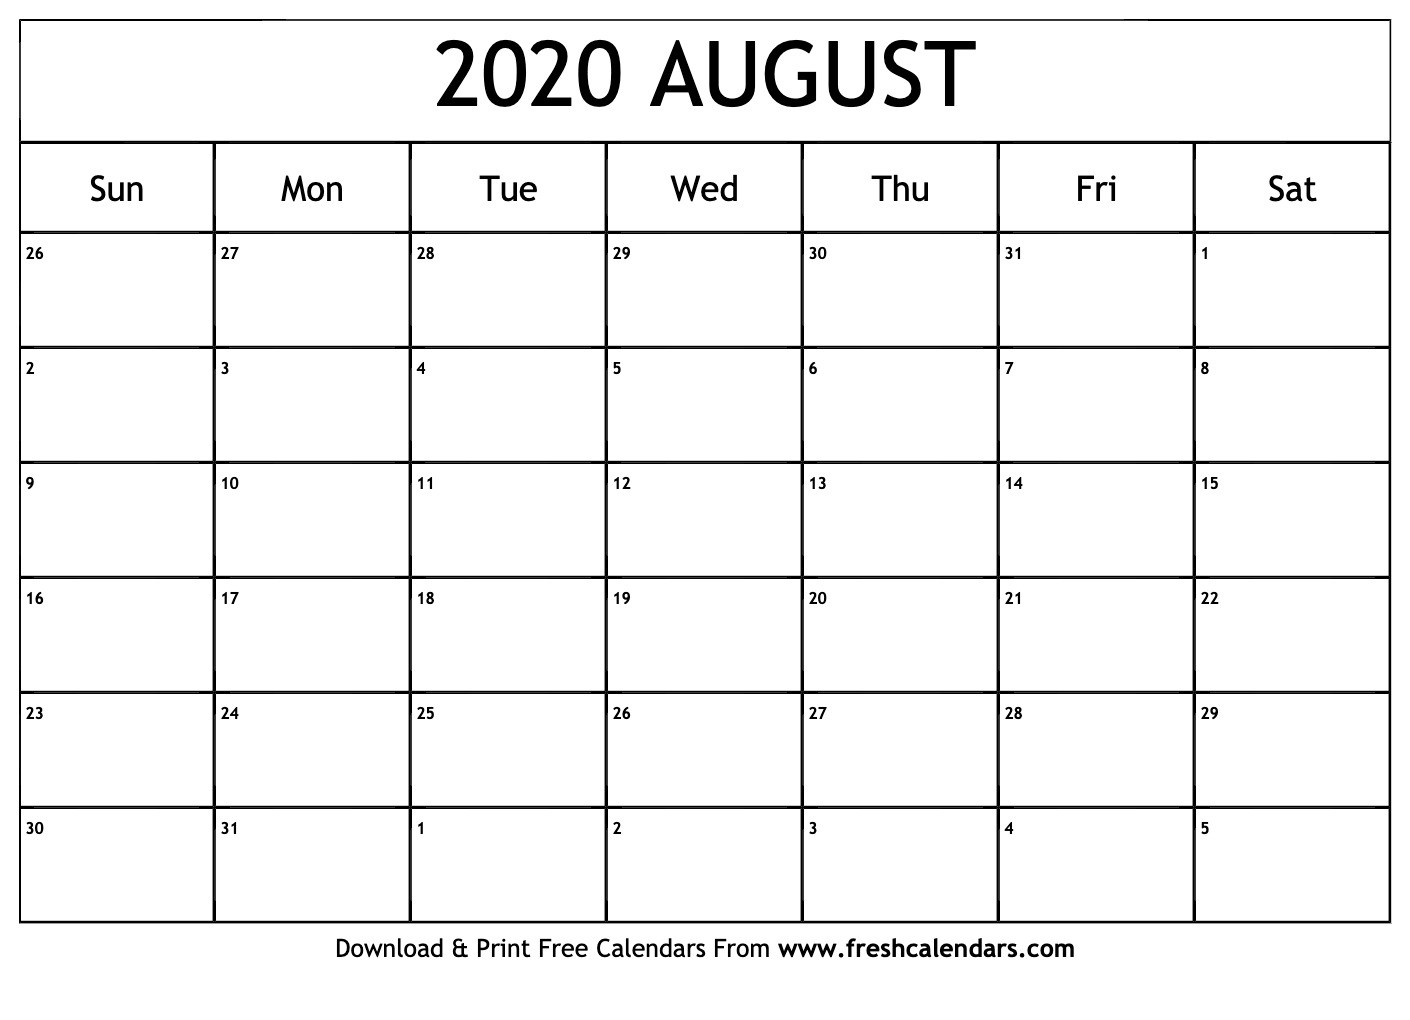 Print Free Calendars Without Downloading August 2020  Free Printable Calendar Without Download